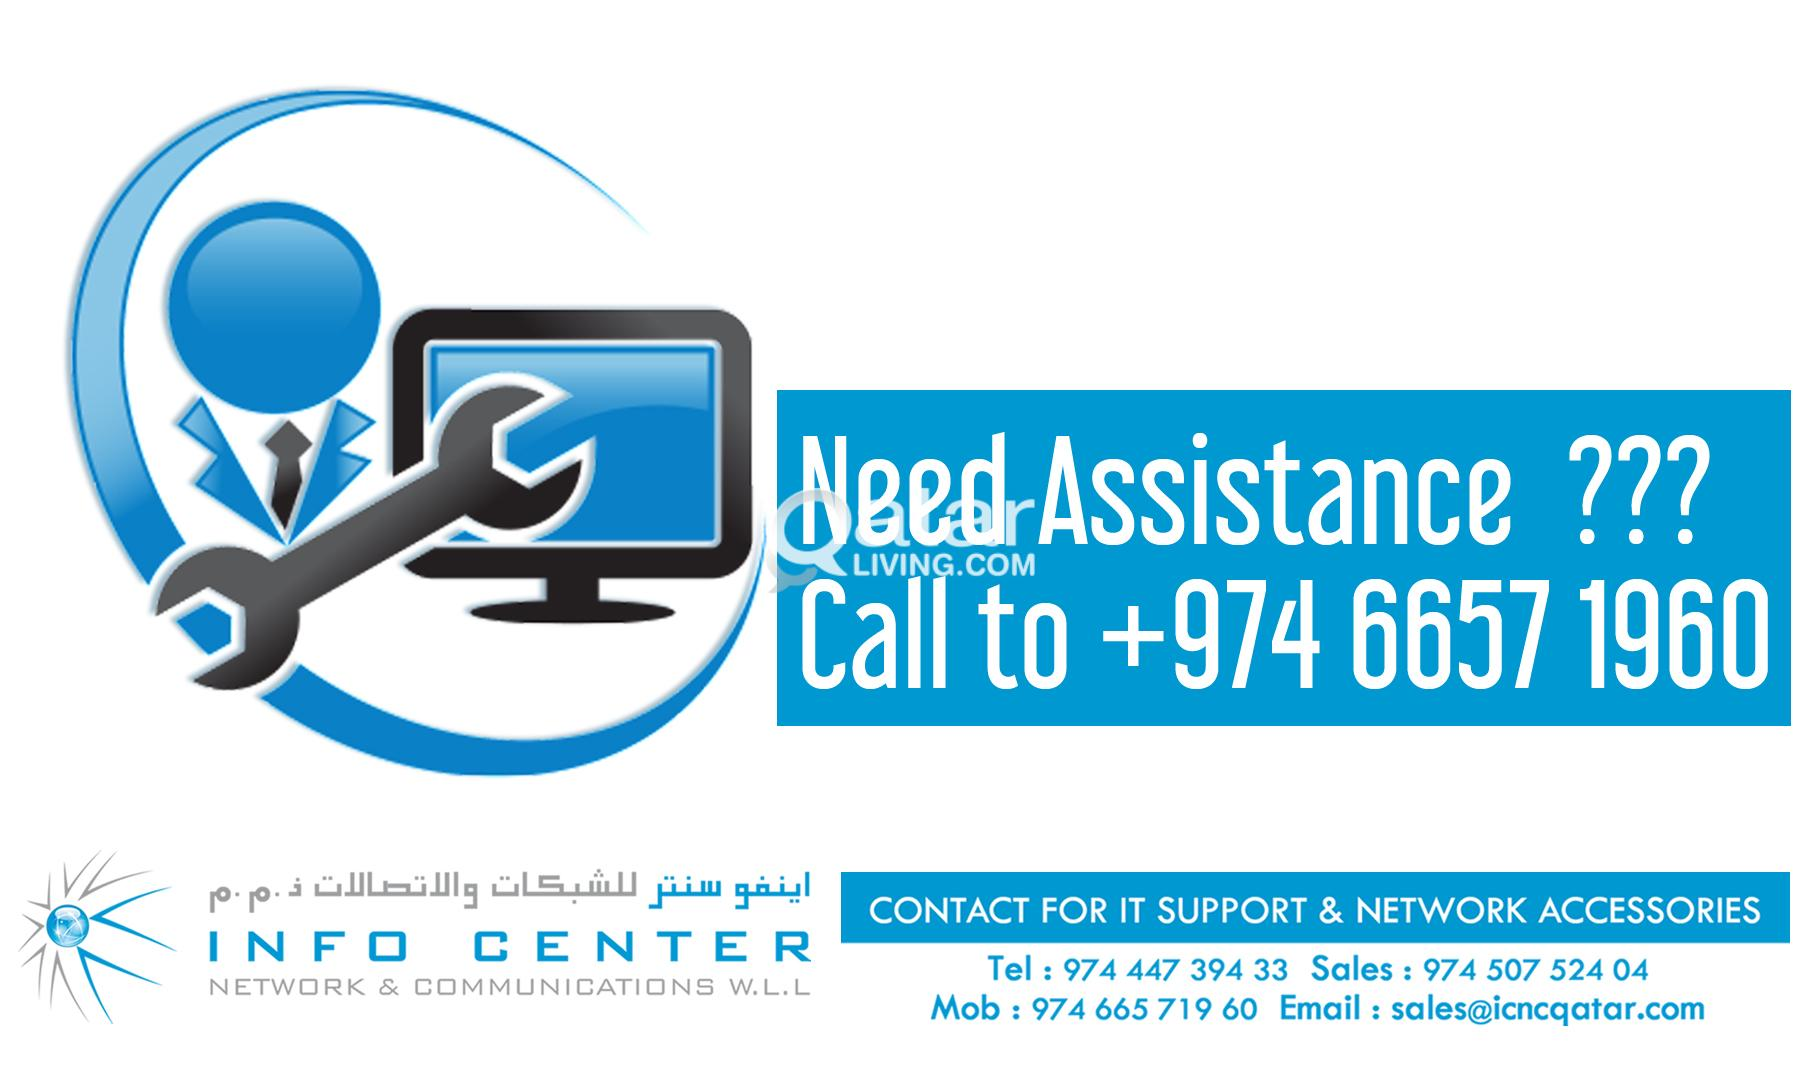 IT SUPPORT IN QATAR FROM INFOCENTER NETWORK